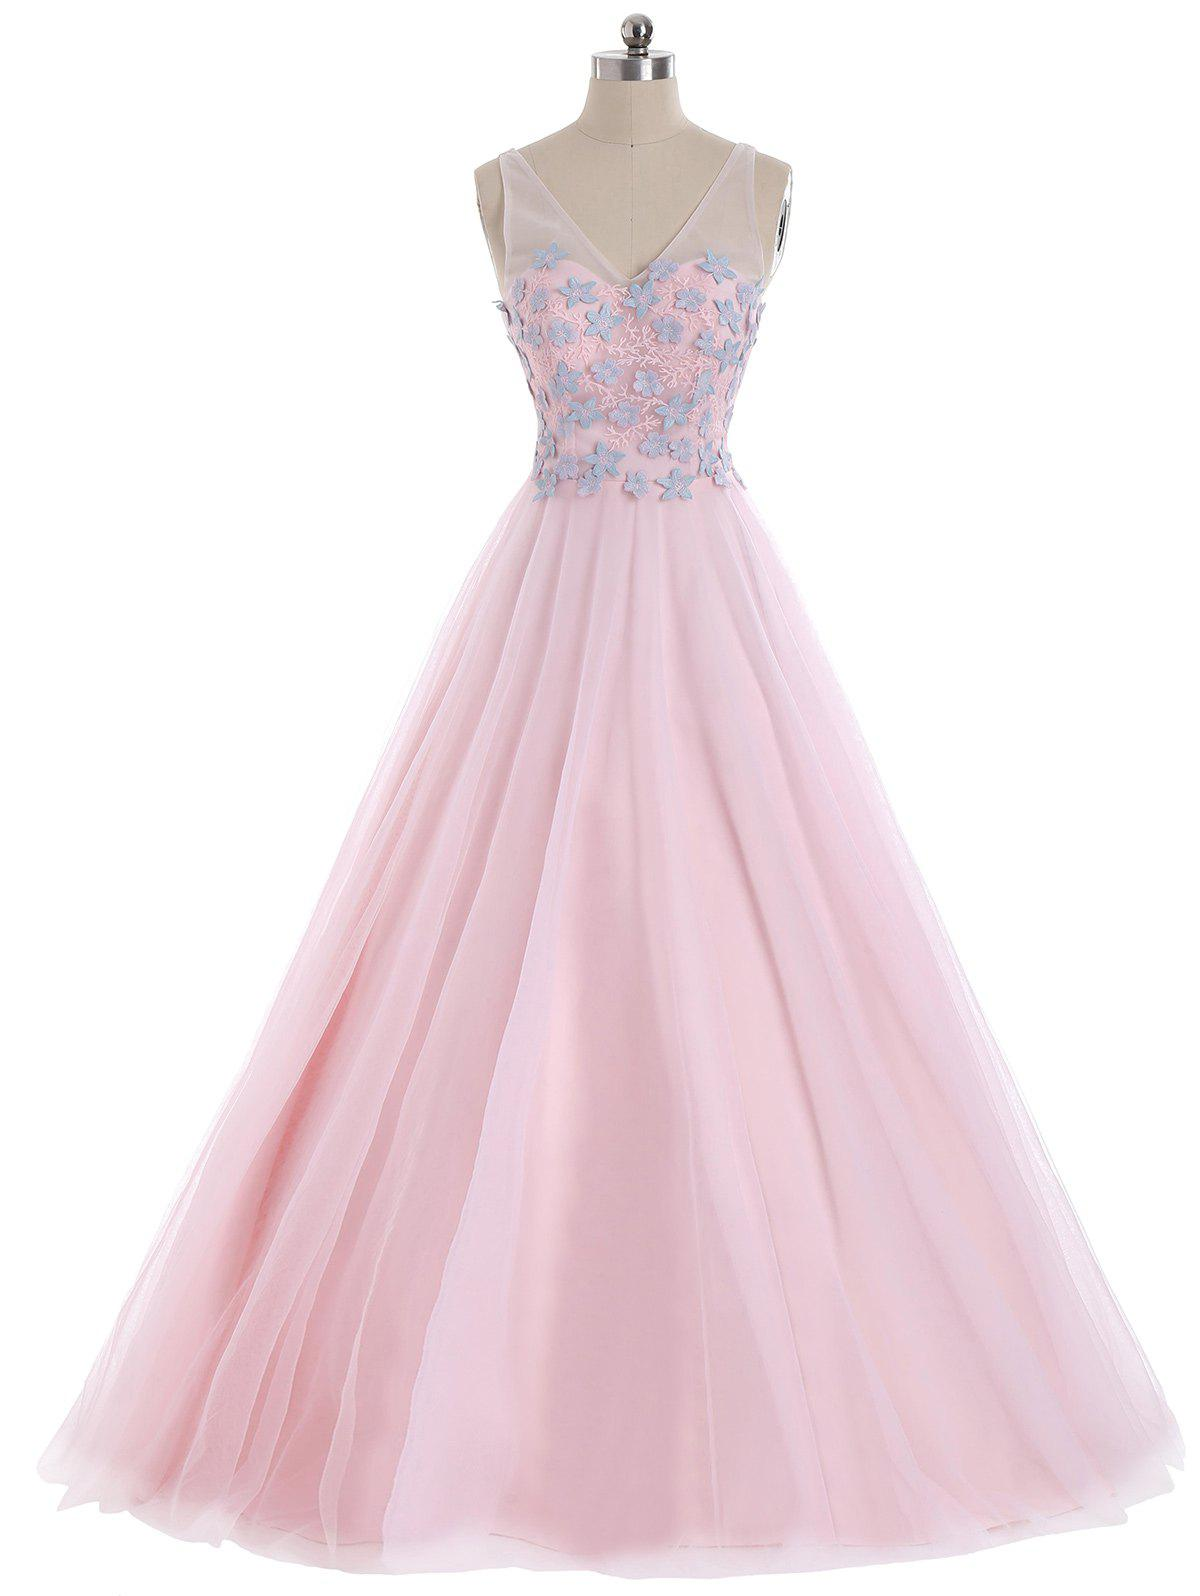 Discount Mesh Panel Floral Applique V Neck Prom Evening Dress